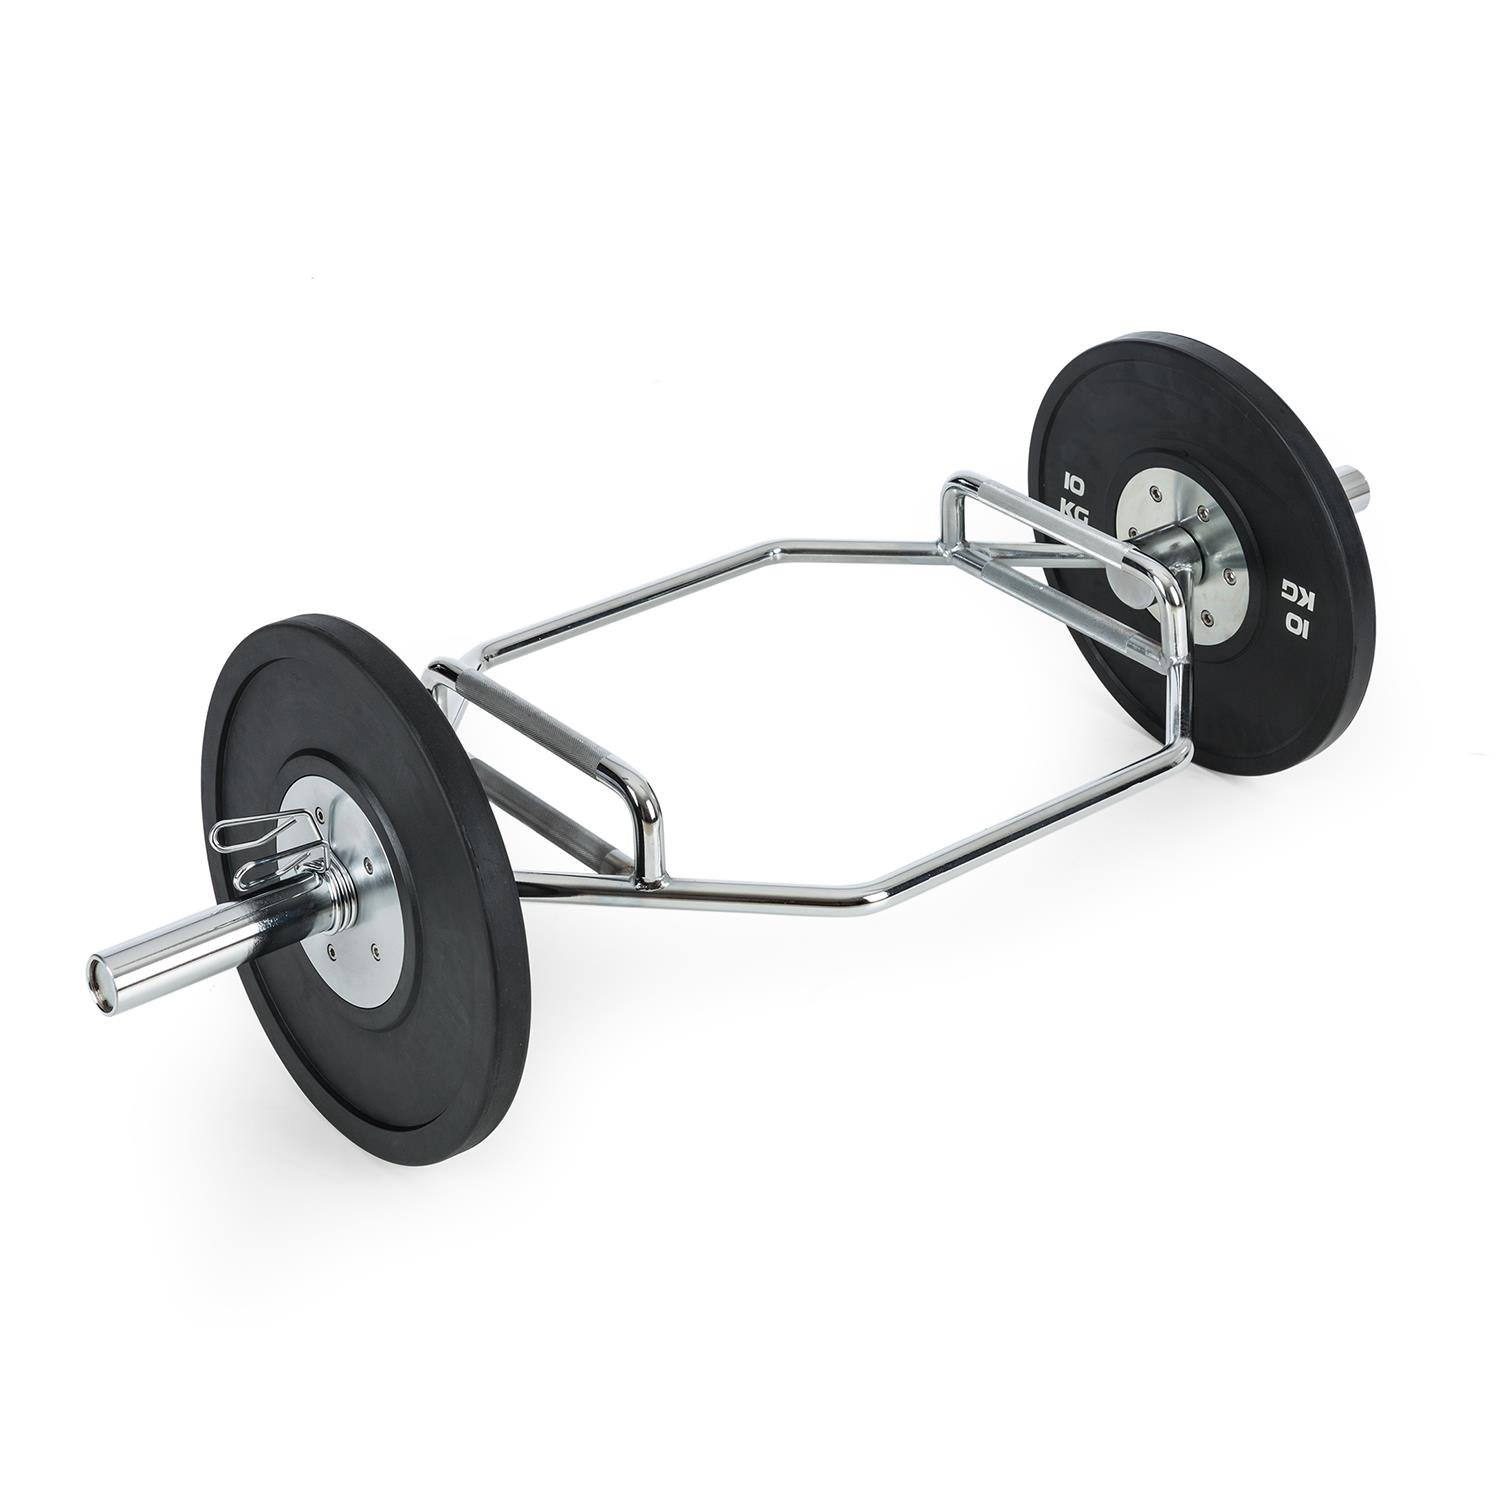 CAPITAL SPORTS Beastbar Hex Bar • Barbell • Deadlift Bar • Triceps Bar • Chrome-Plated • Haxagonal Shaped • Knurled Handles • 2 Different Grip Positions • Solid Steel • Home Training • 300kg Max. Load Capacity Hexagonal Shaped Barbell Bar 2 Different Grip